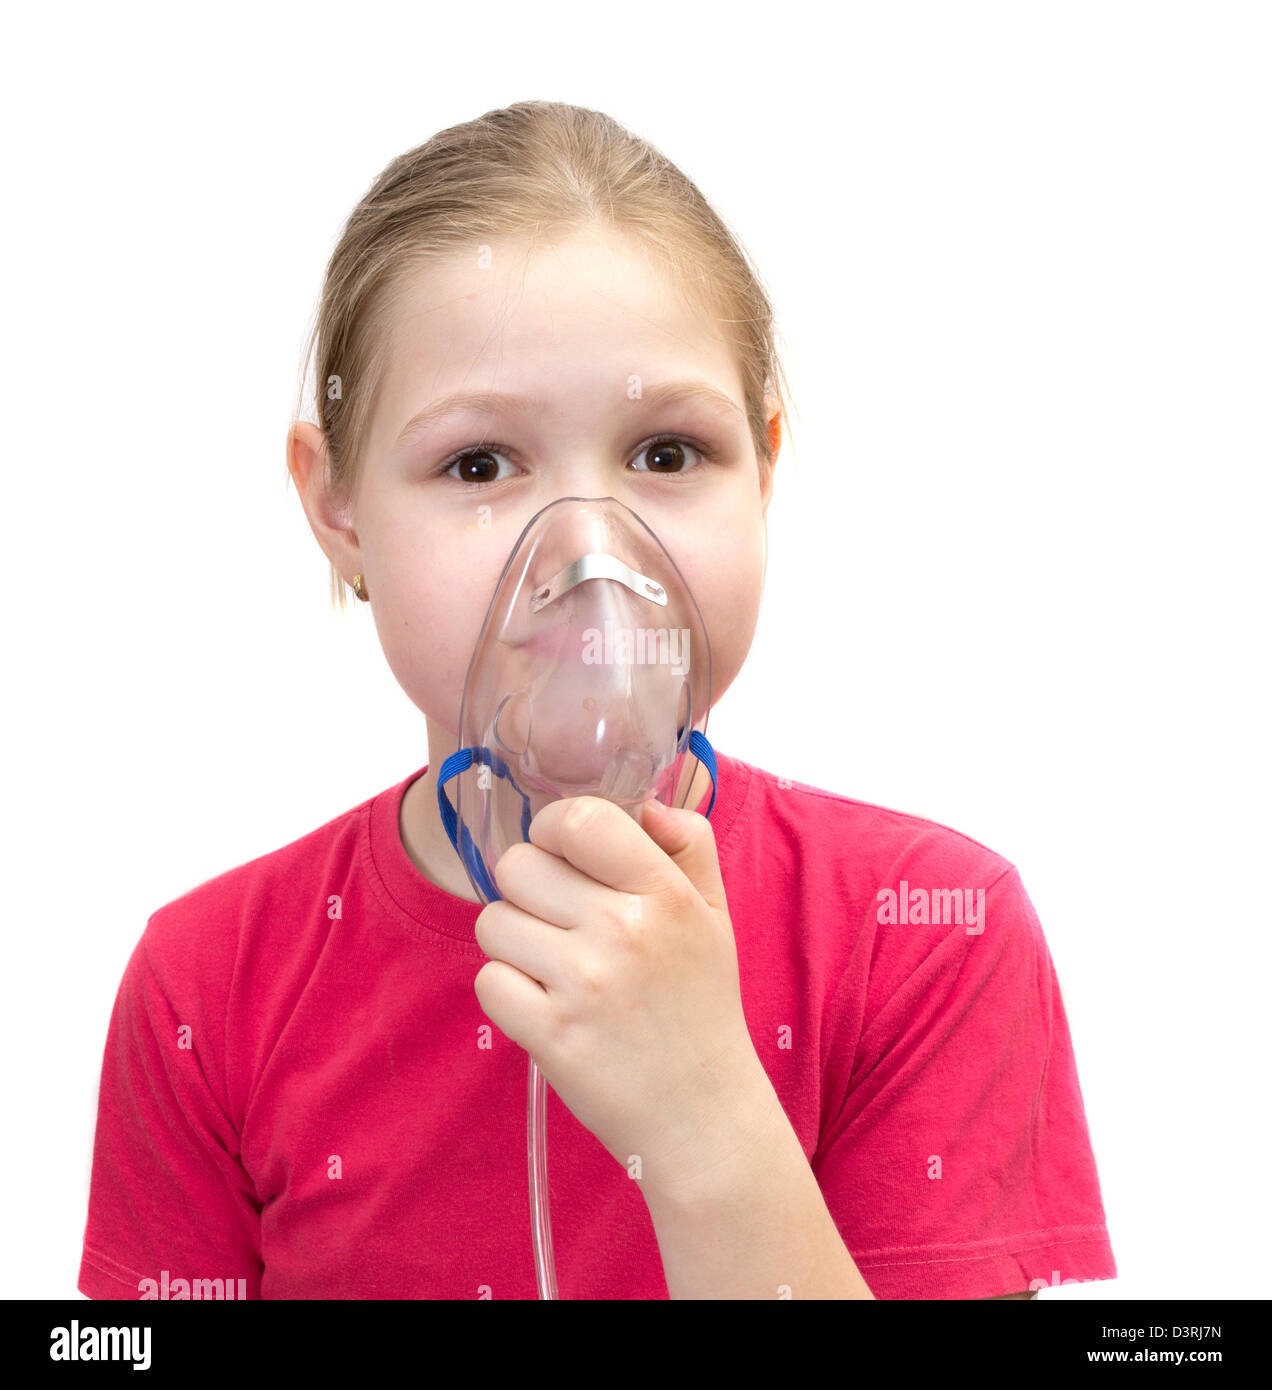 The girl with a mask for inhalations Stock Photo